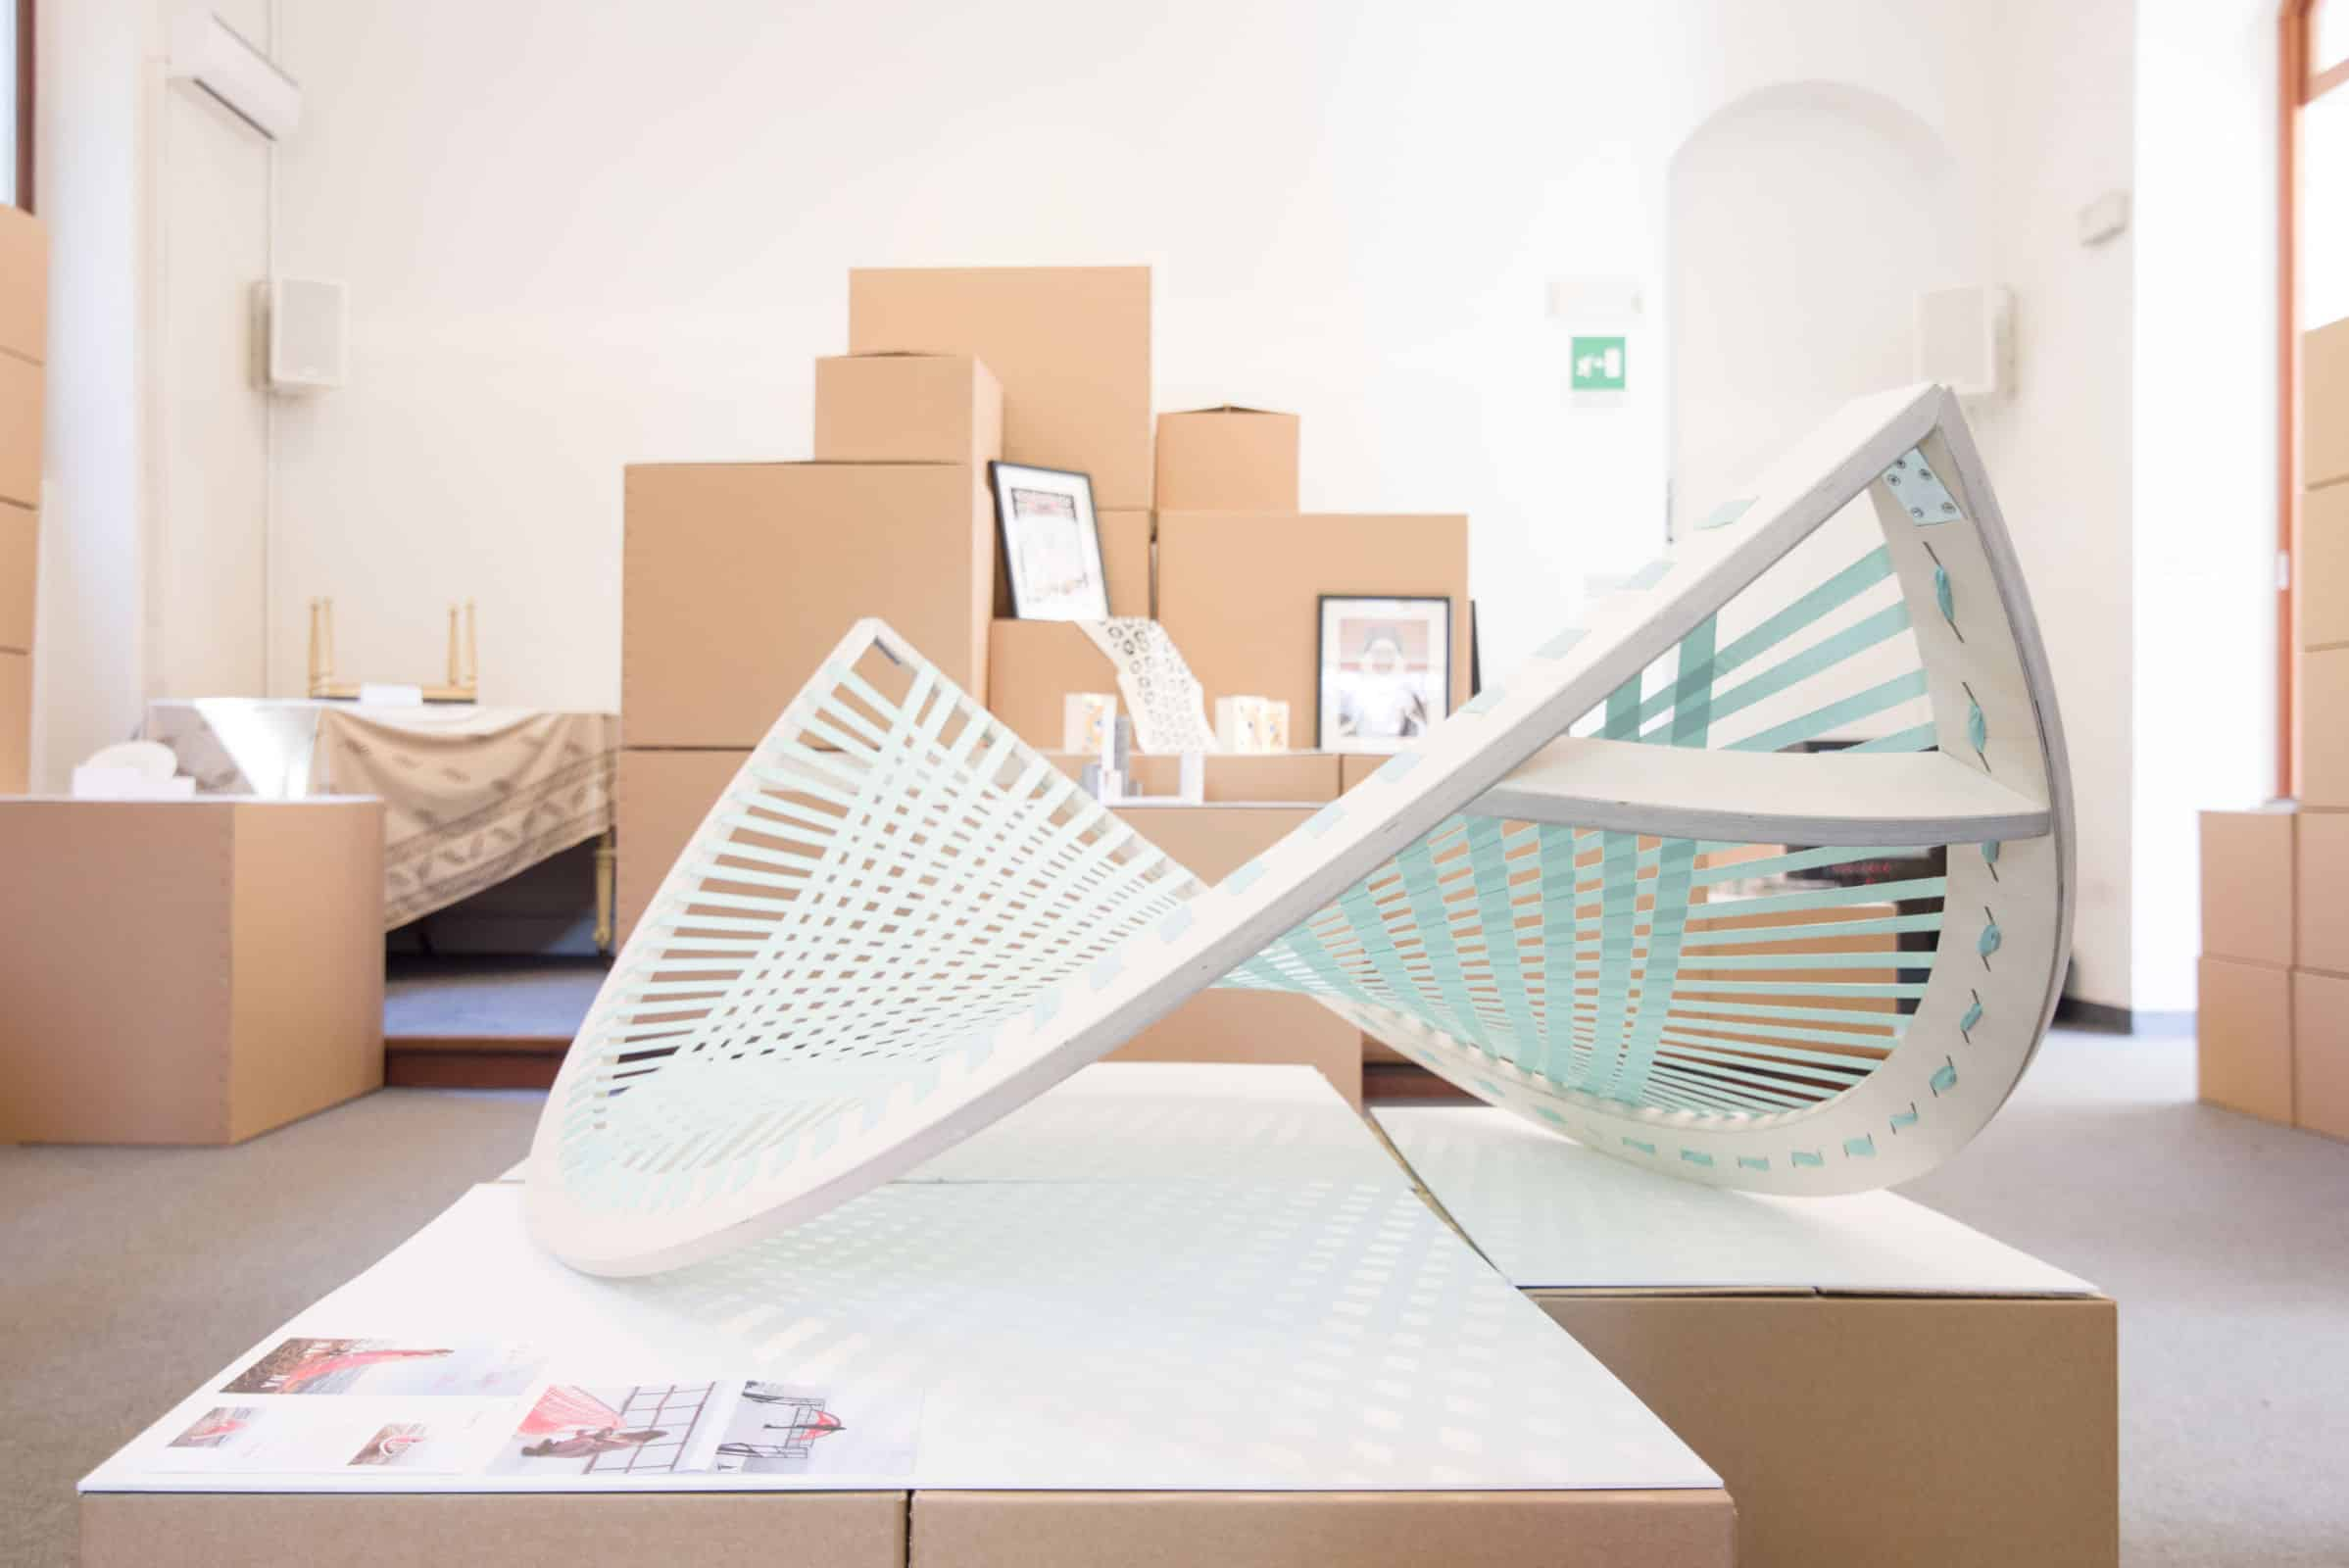 Doutdesign Zona Santambrogio Best of Fuorisalone 2017